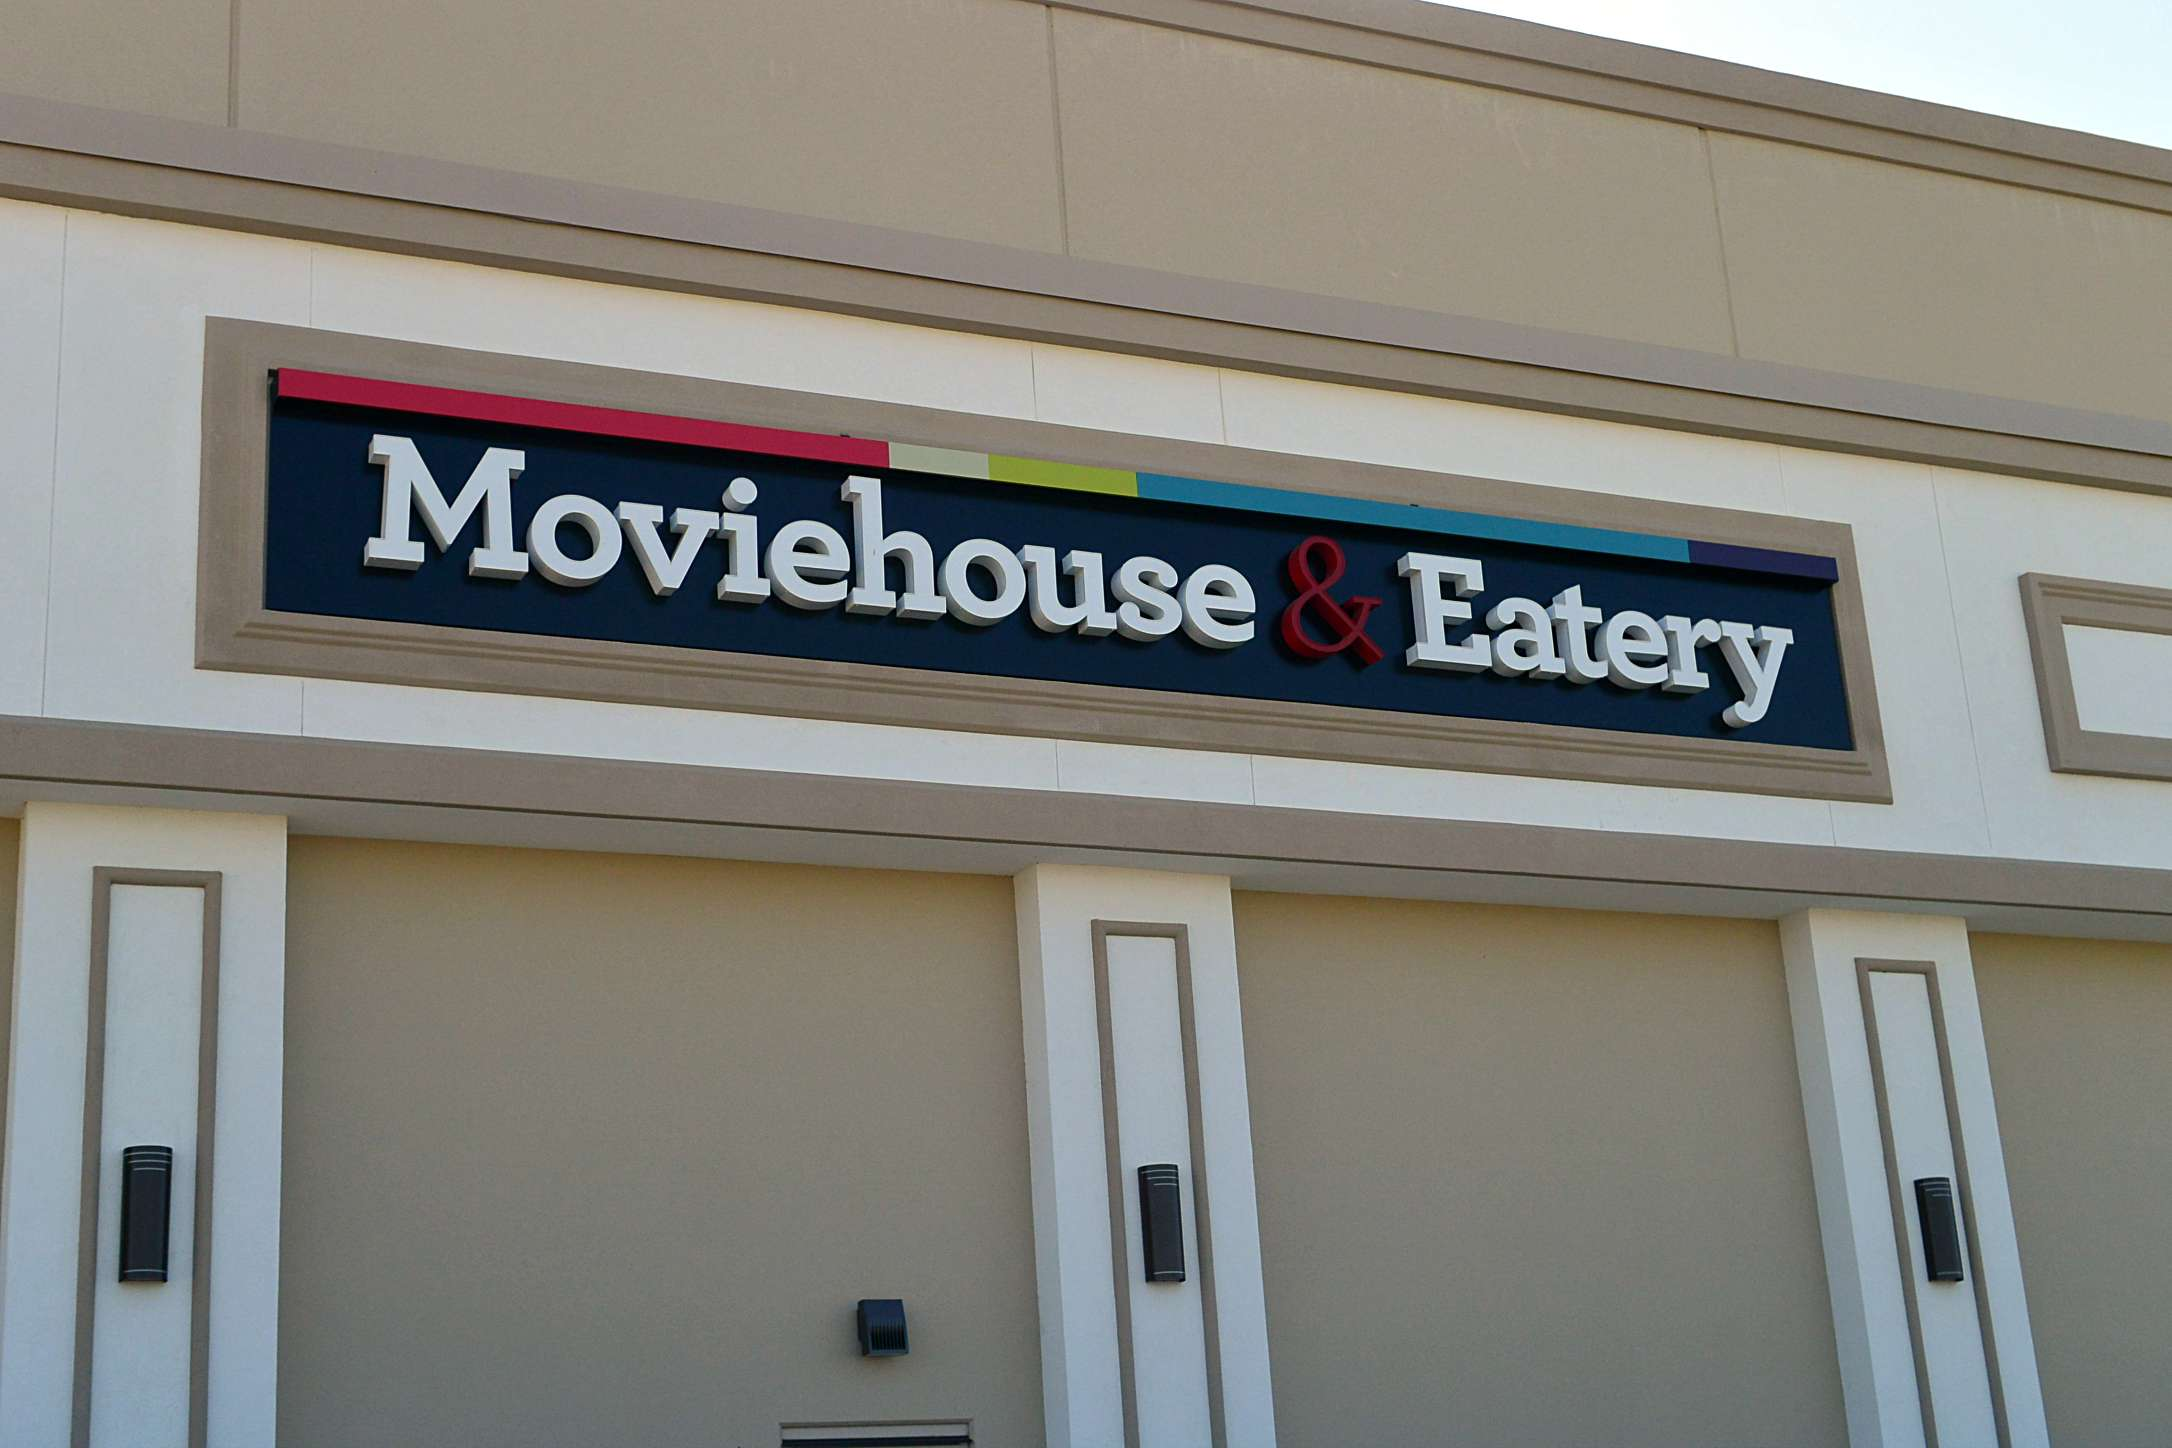 Lakeside Movie House Moviehouse And Eatery New Location In Flower Mound Tx Is